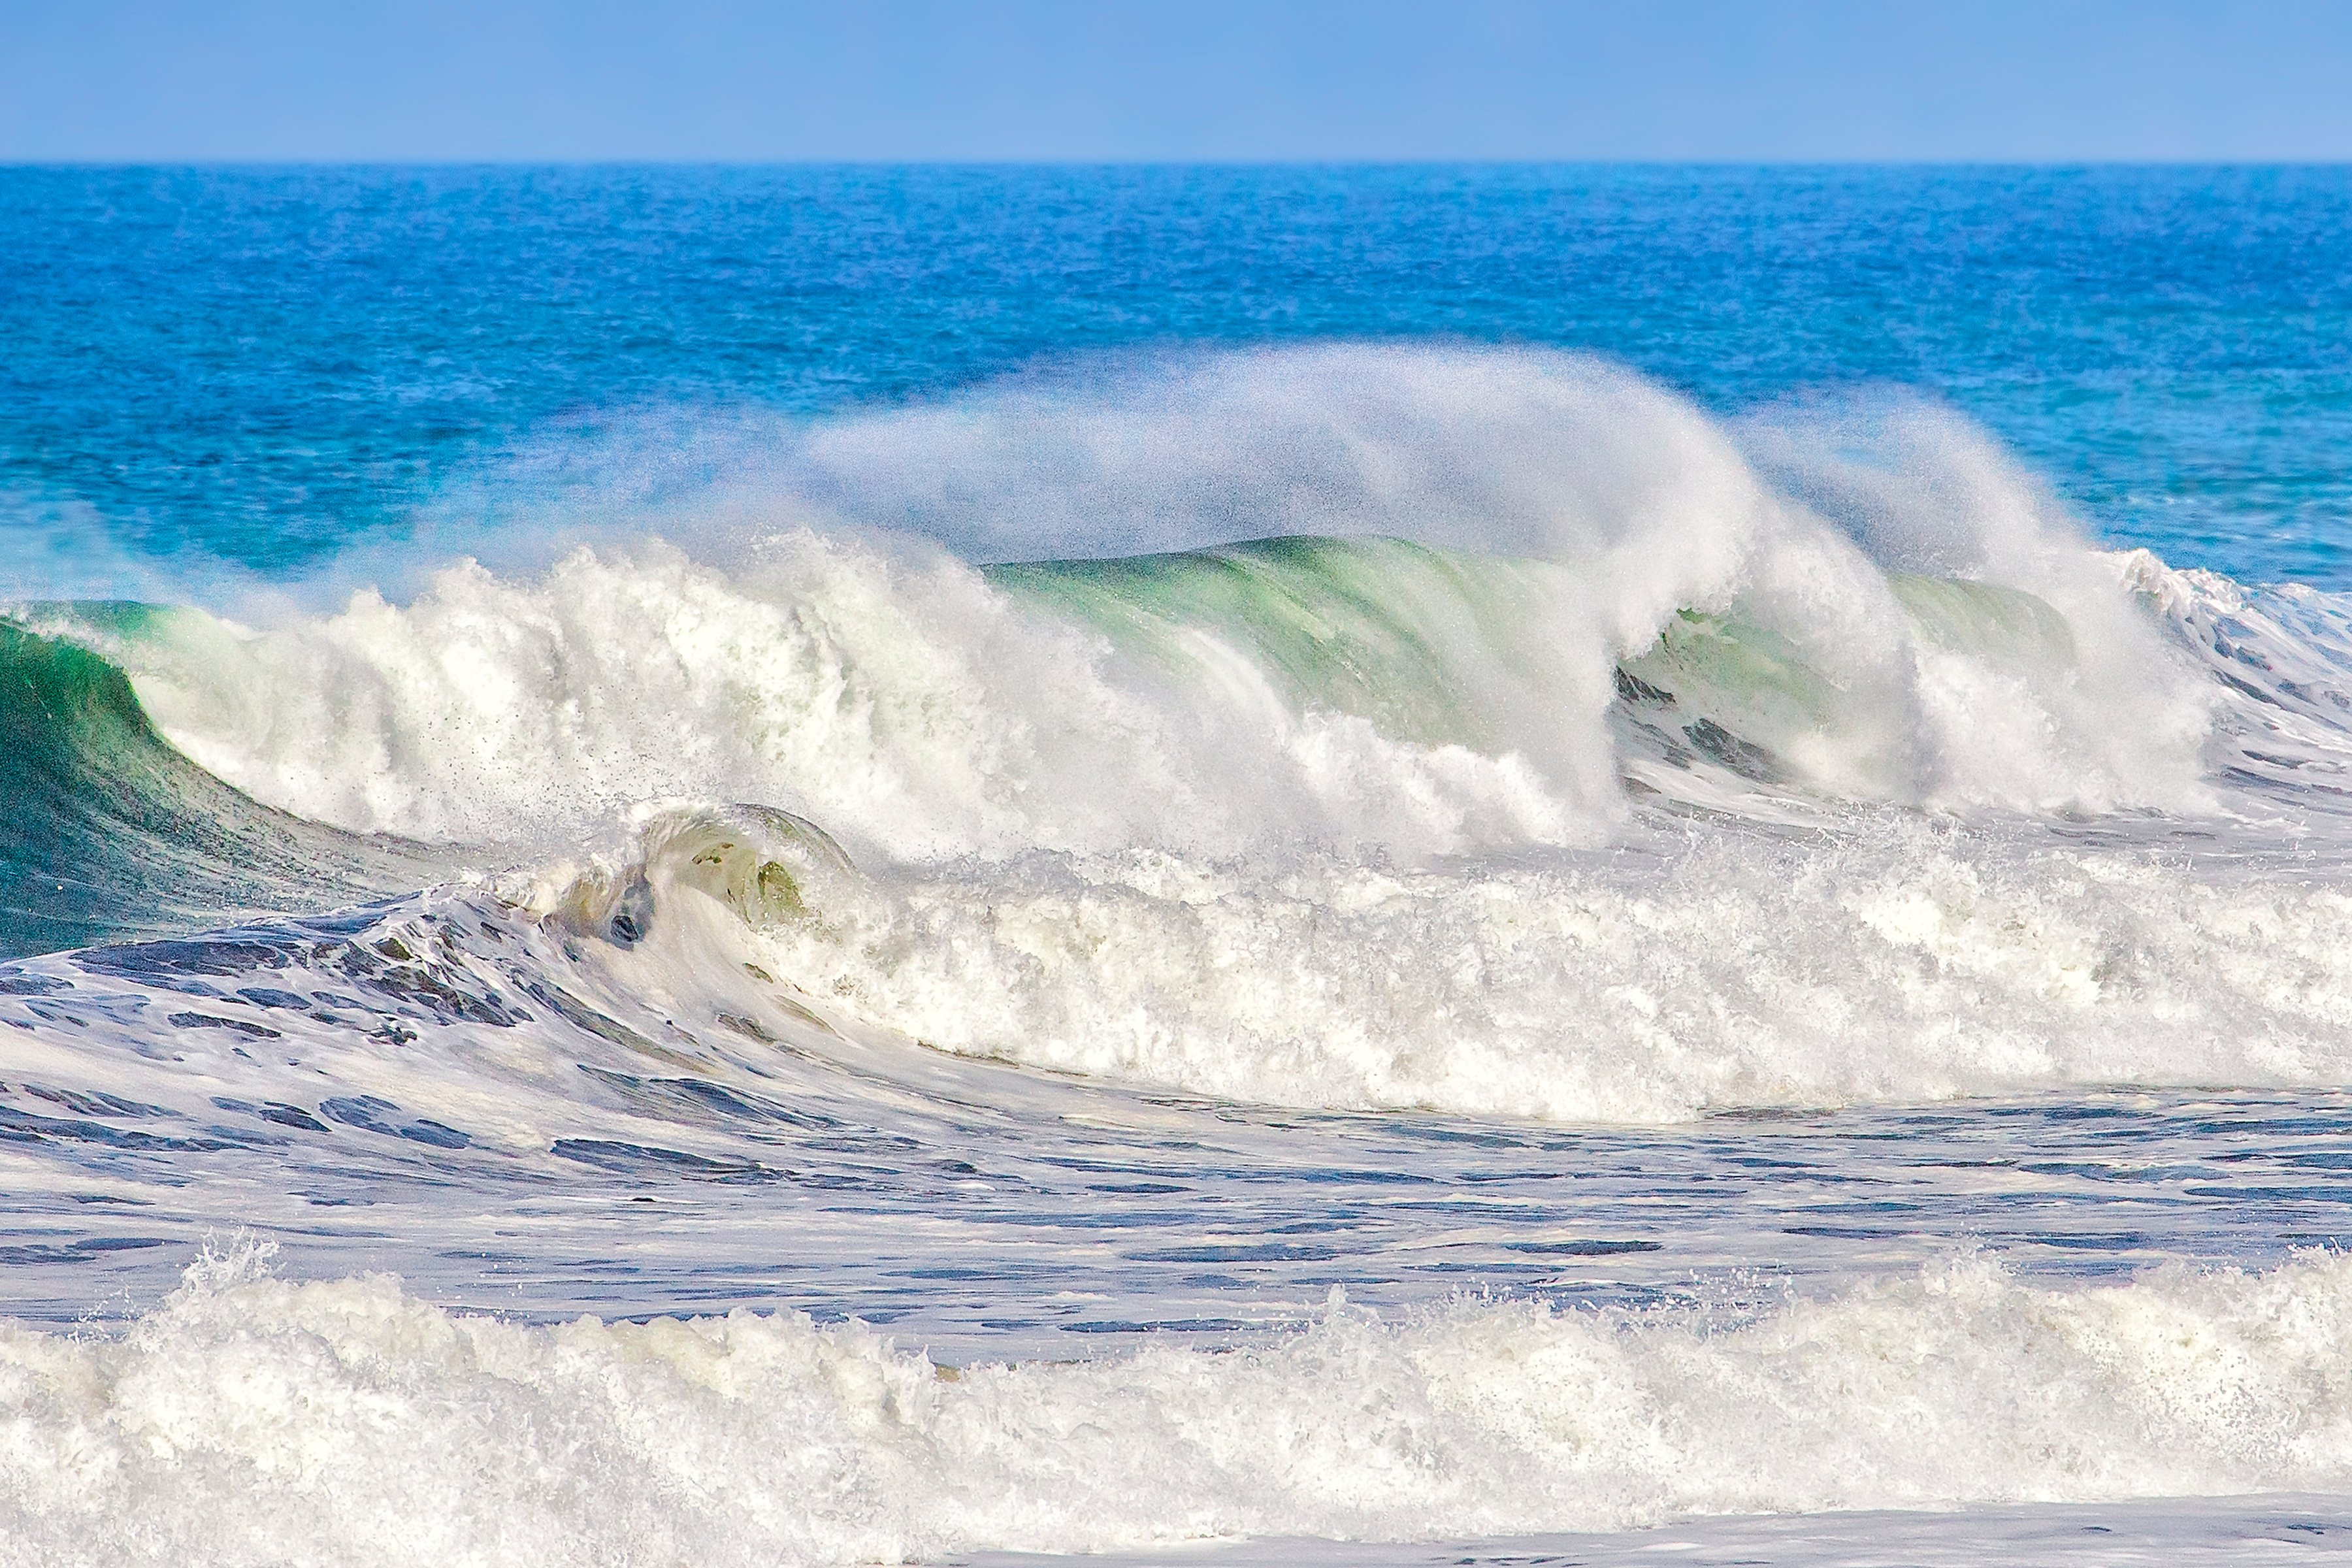 PACIFIC WAVE - My wife and I had a grand time watching some magnificent wave action along the coast of California close to Half Moon Bay.